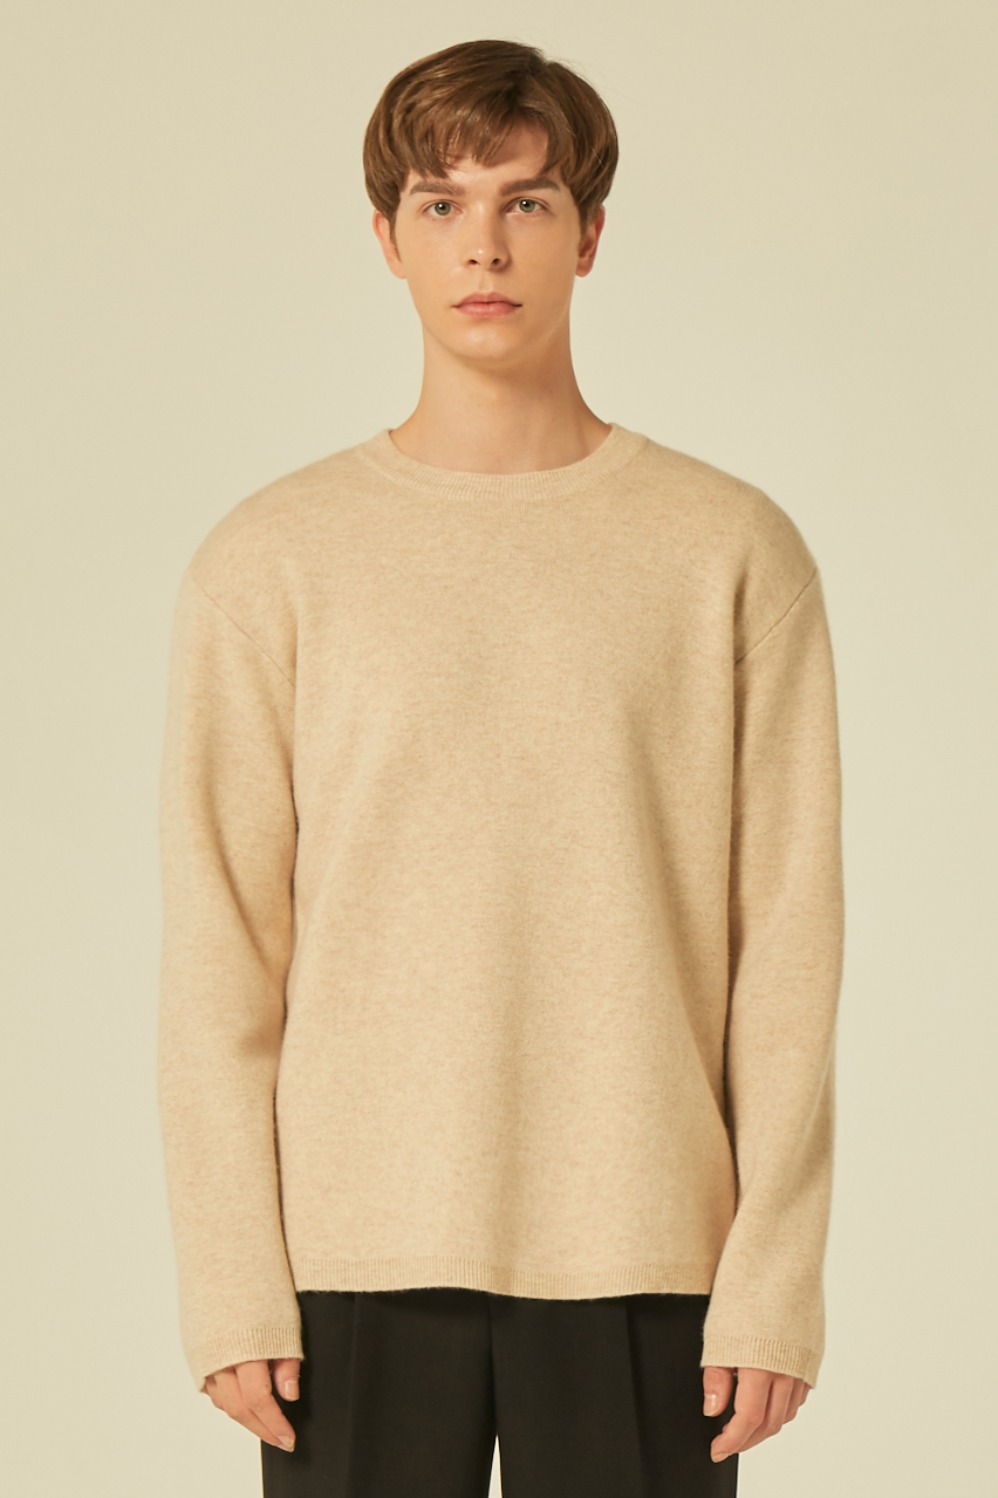 Cashmere Knit (Cream)